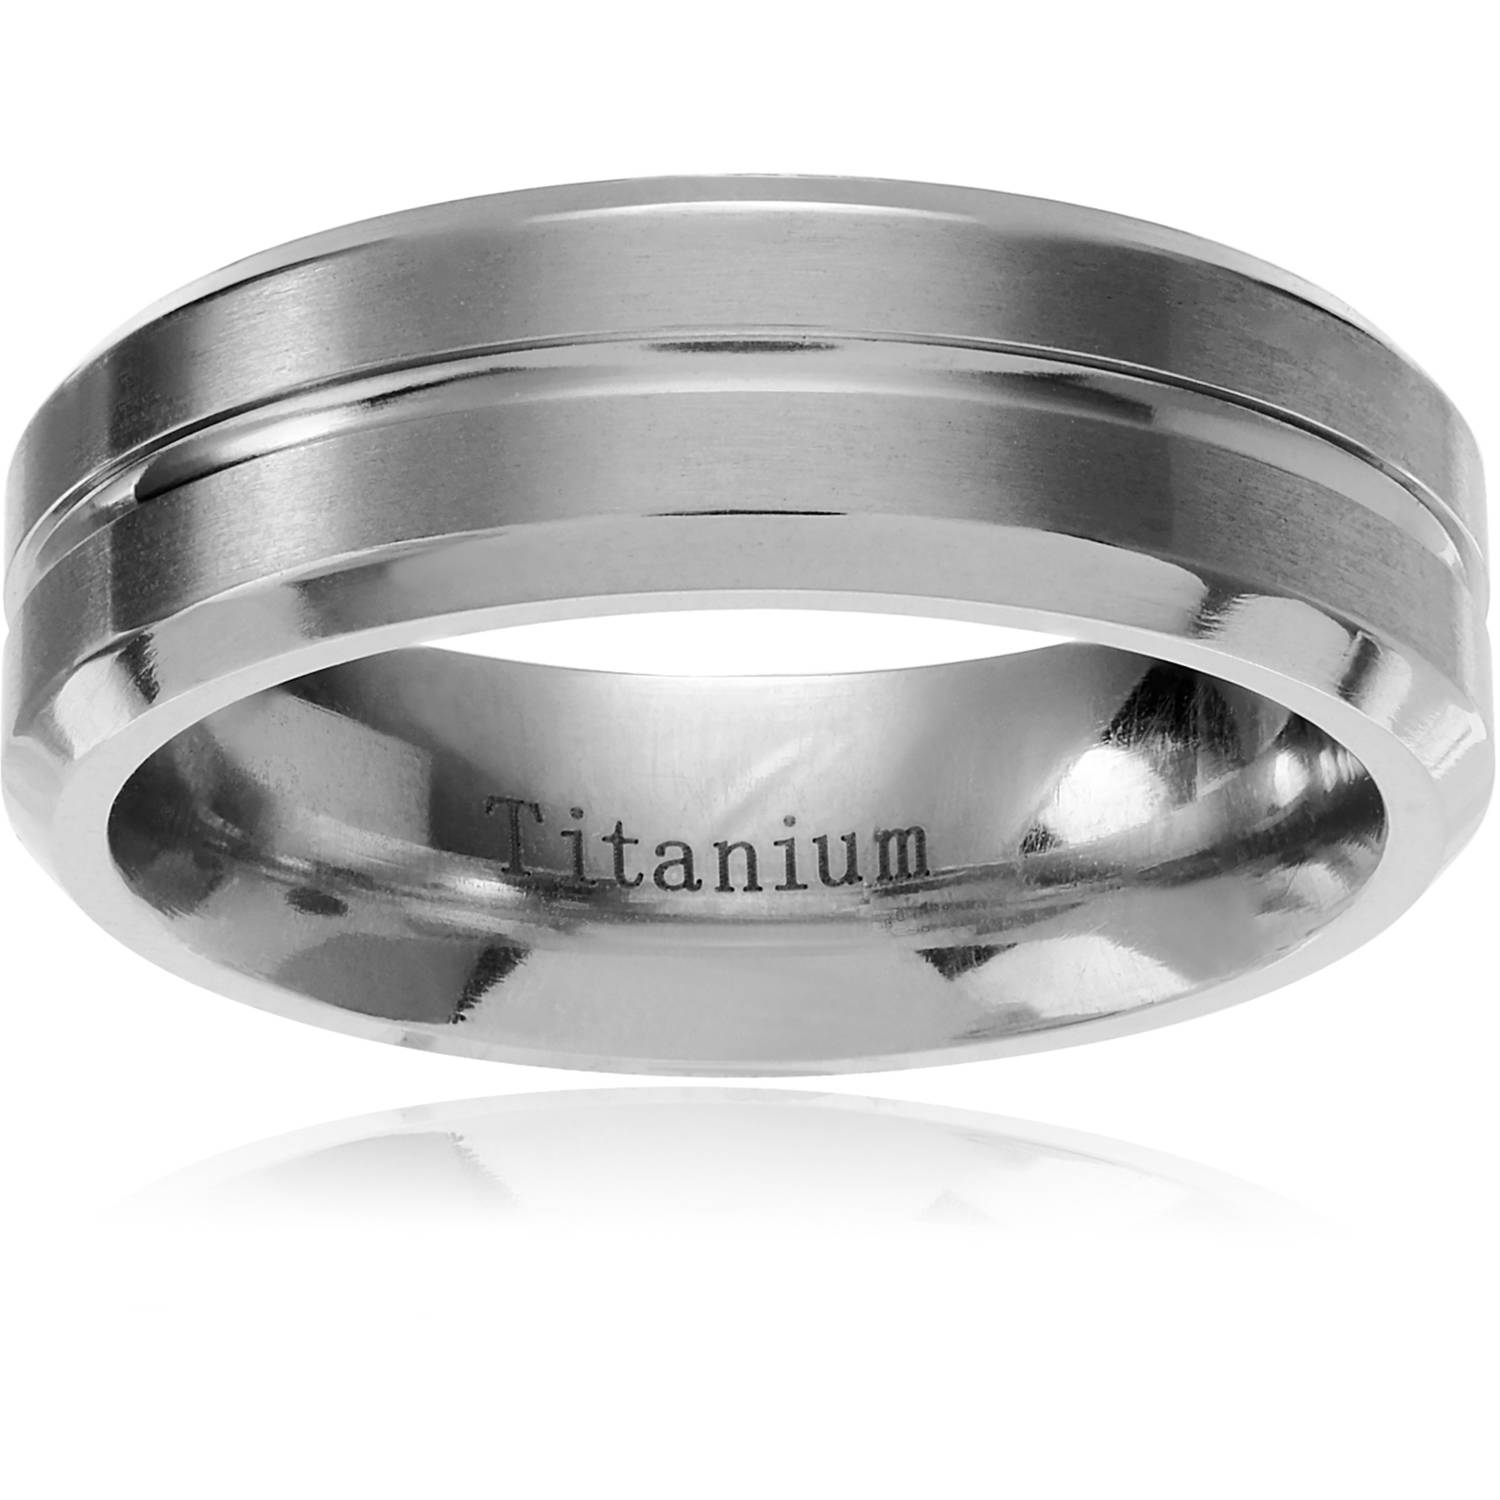 Daxx Men's Titanium Grooved Center Brushed Wedding Ring, 7mm